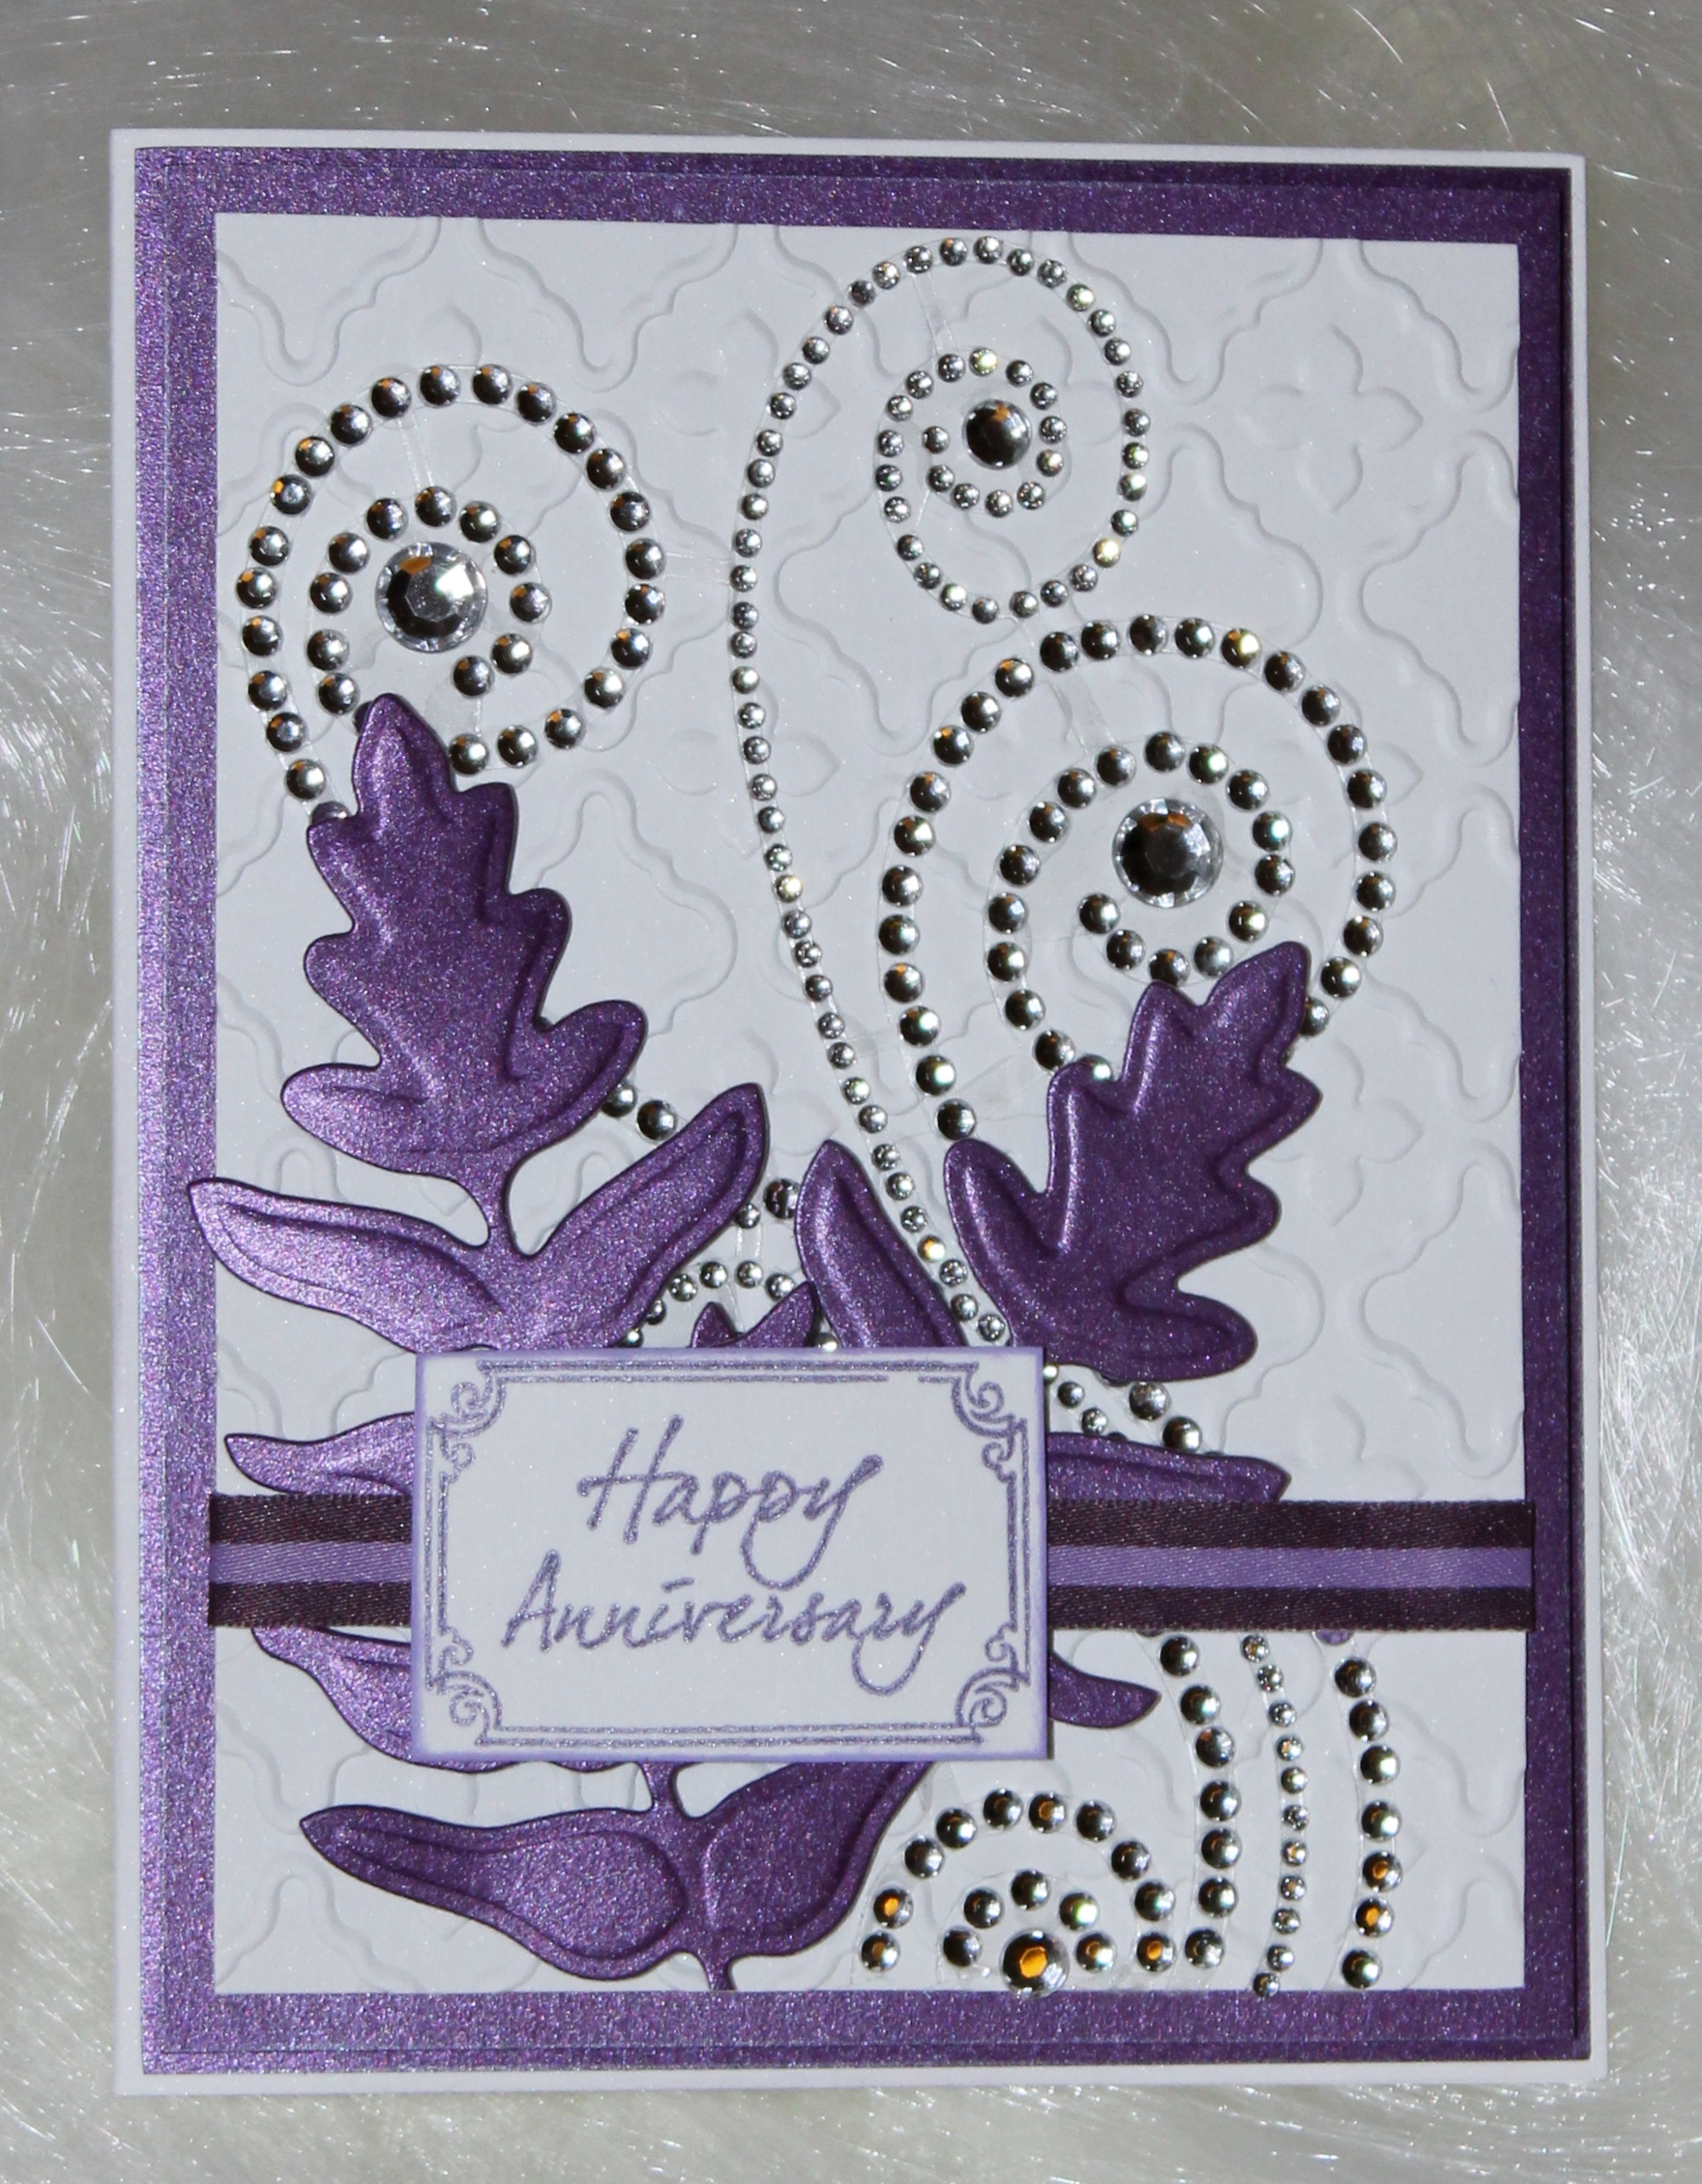 Embossed Anniversary Card with Rhinestone Swirls